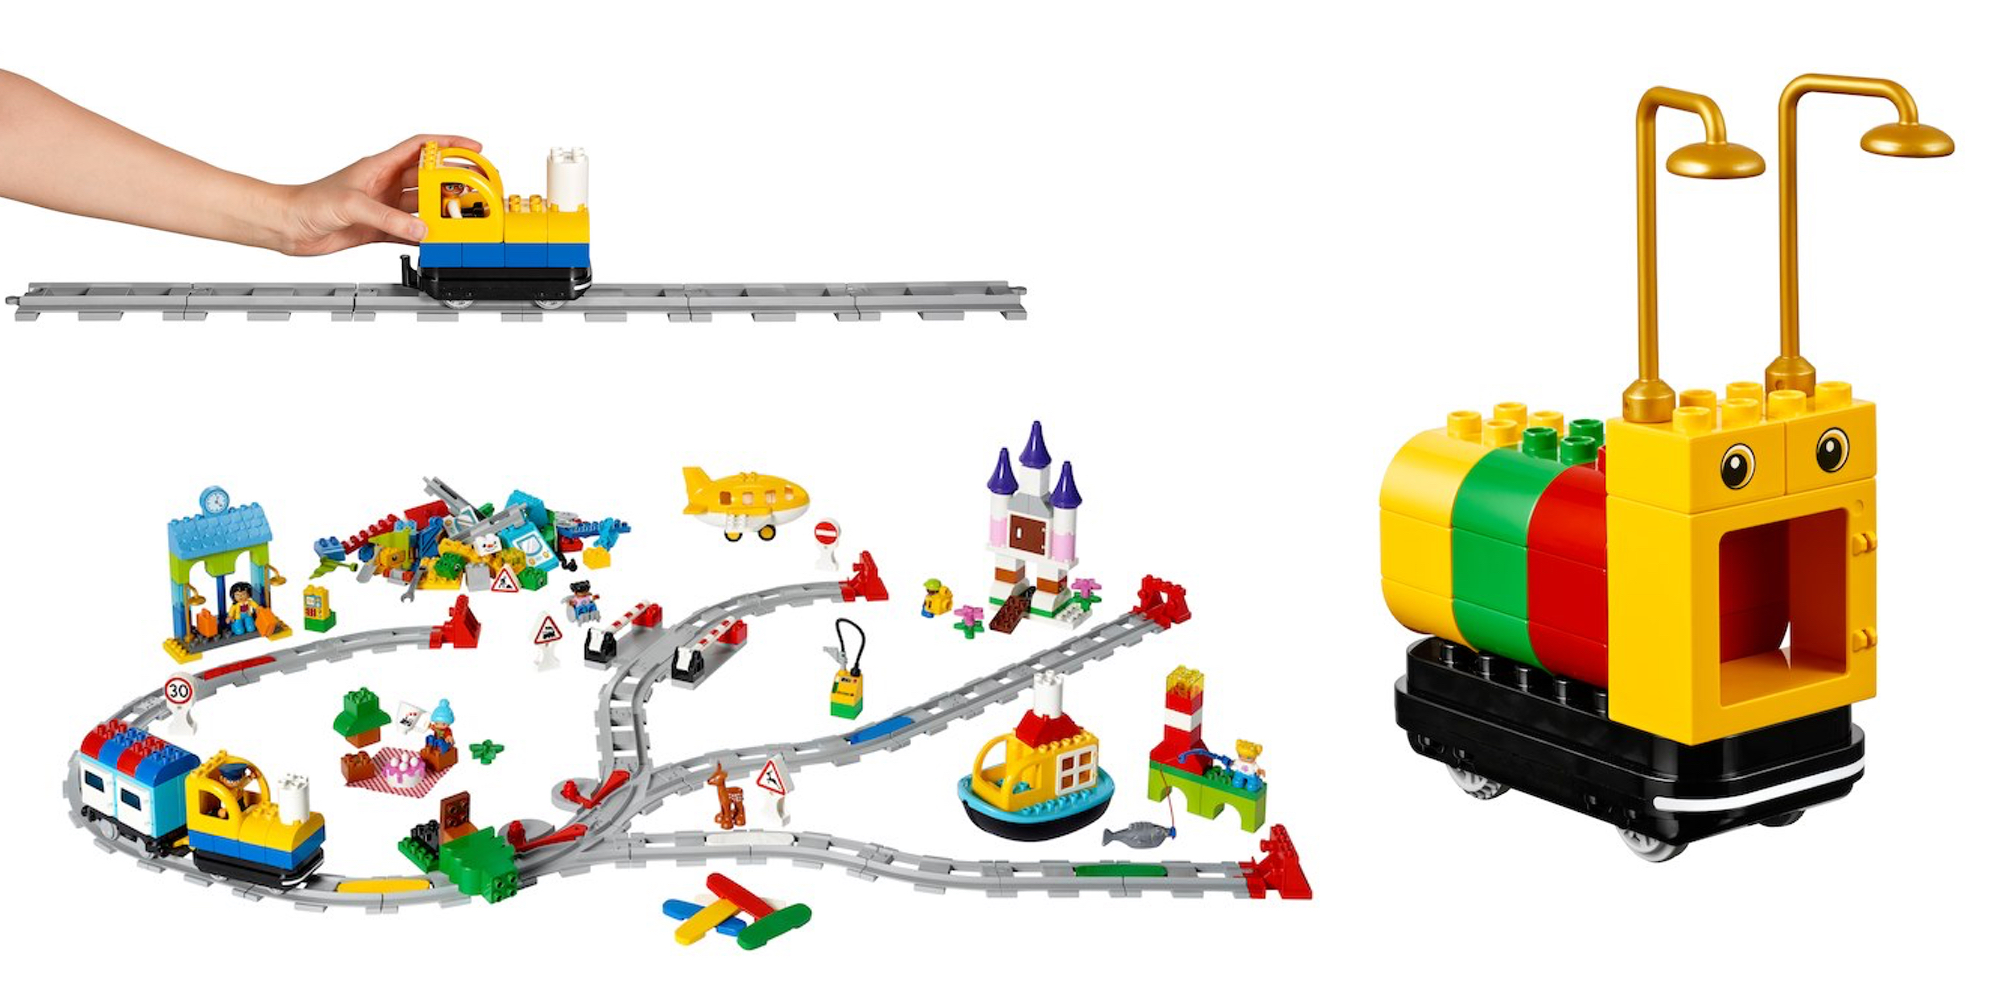 LEGO reenters the classroom with new STEAM-focused Duplo ...